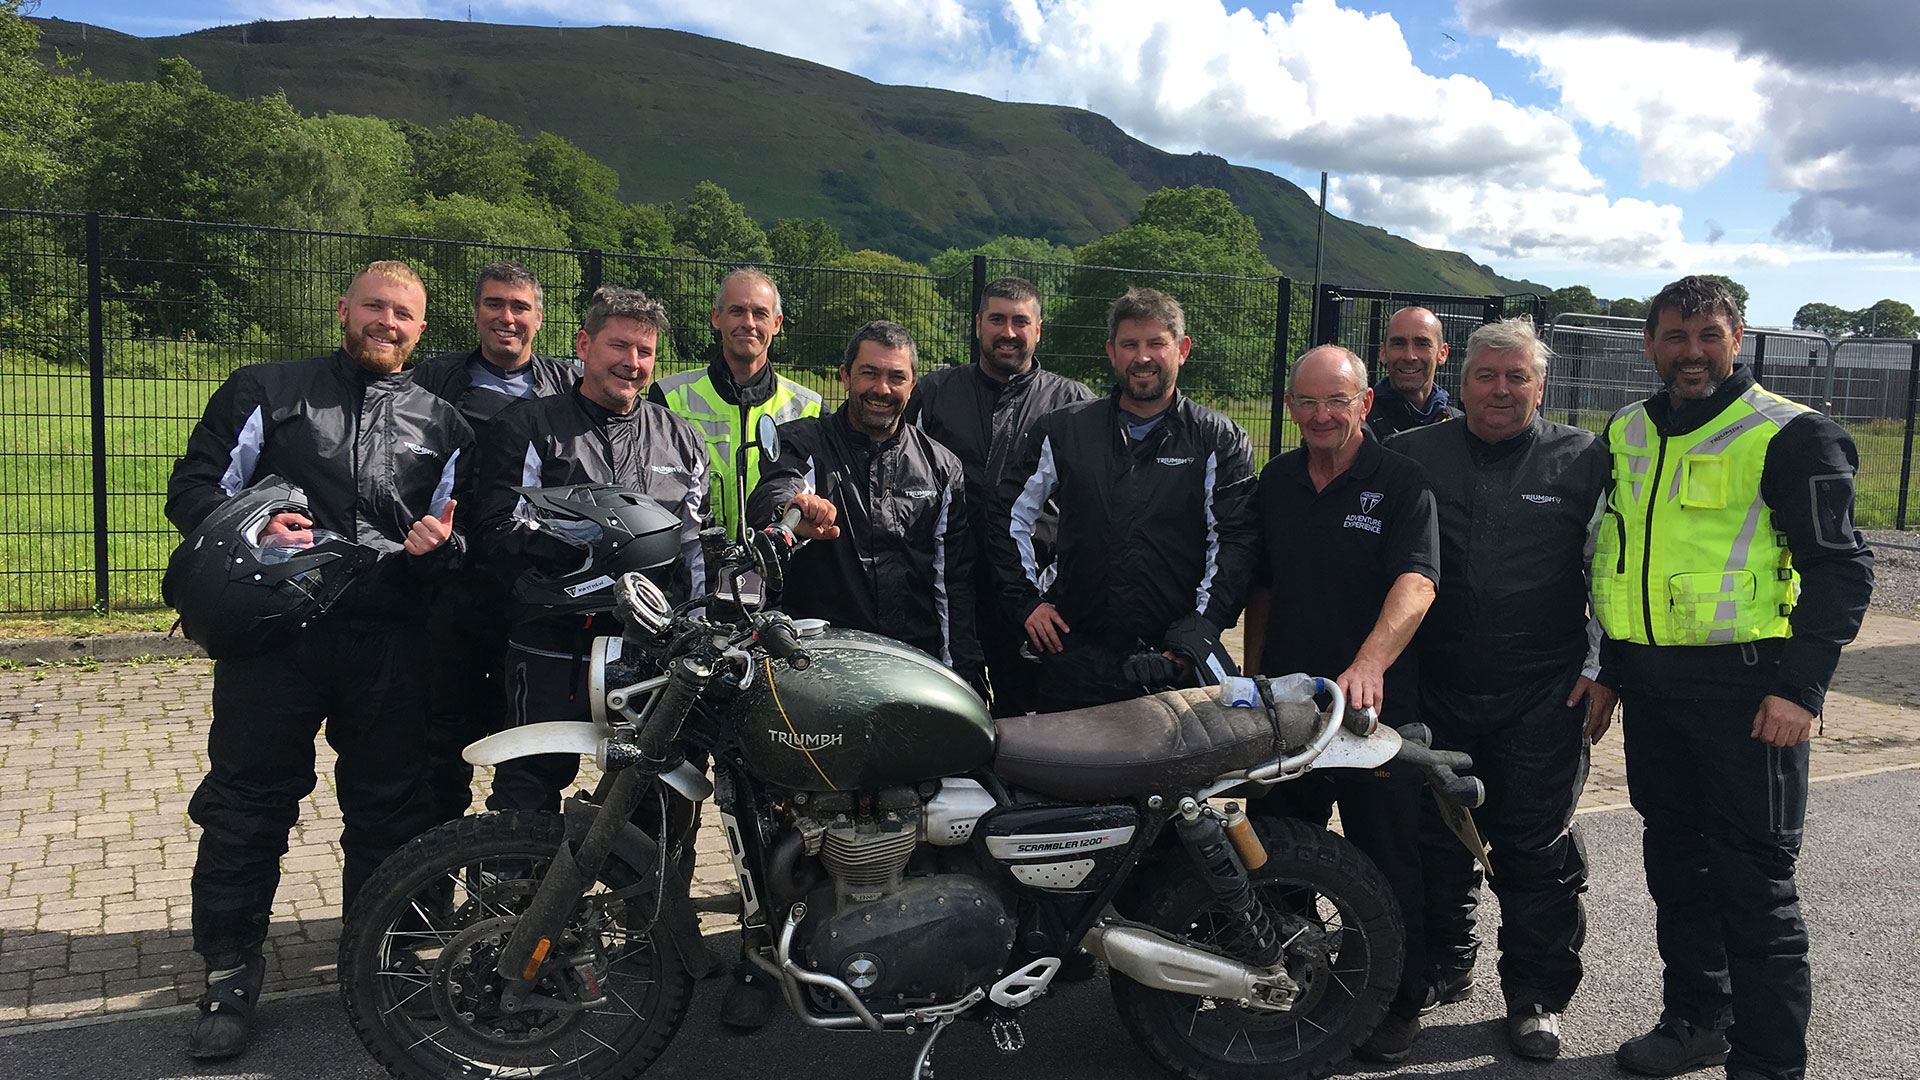 Group shot of the rider participants on the training course for riding the Triumph Scrambler 1200 XC